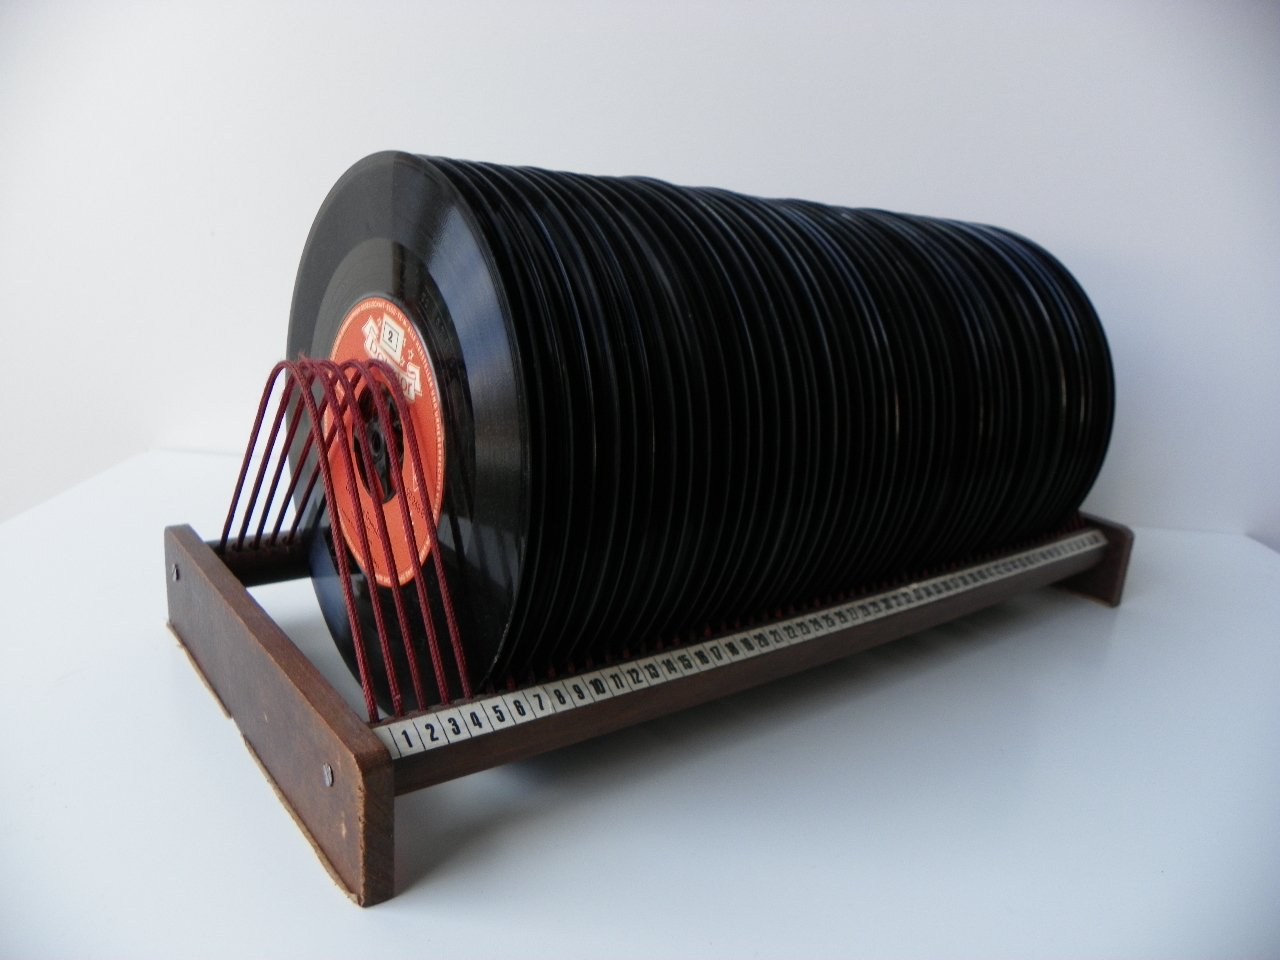 Vinyl Record Rack with Records, 1950s for sale at Pamono